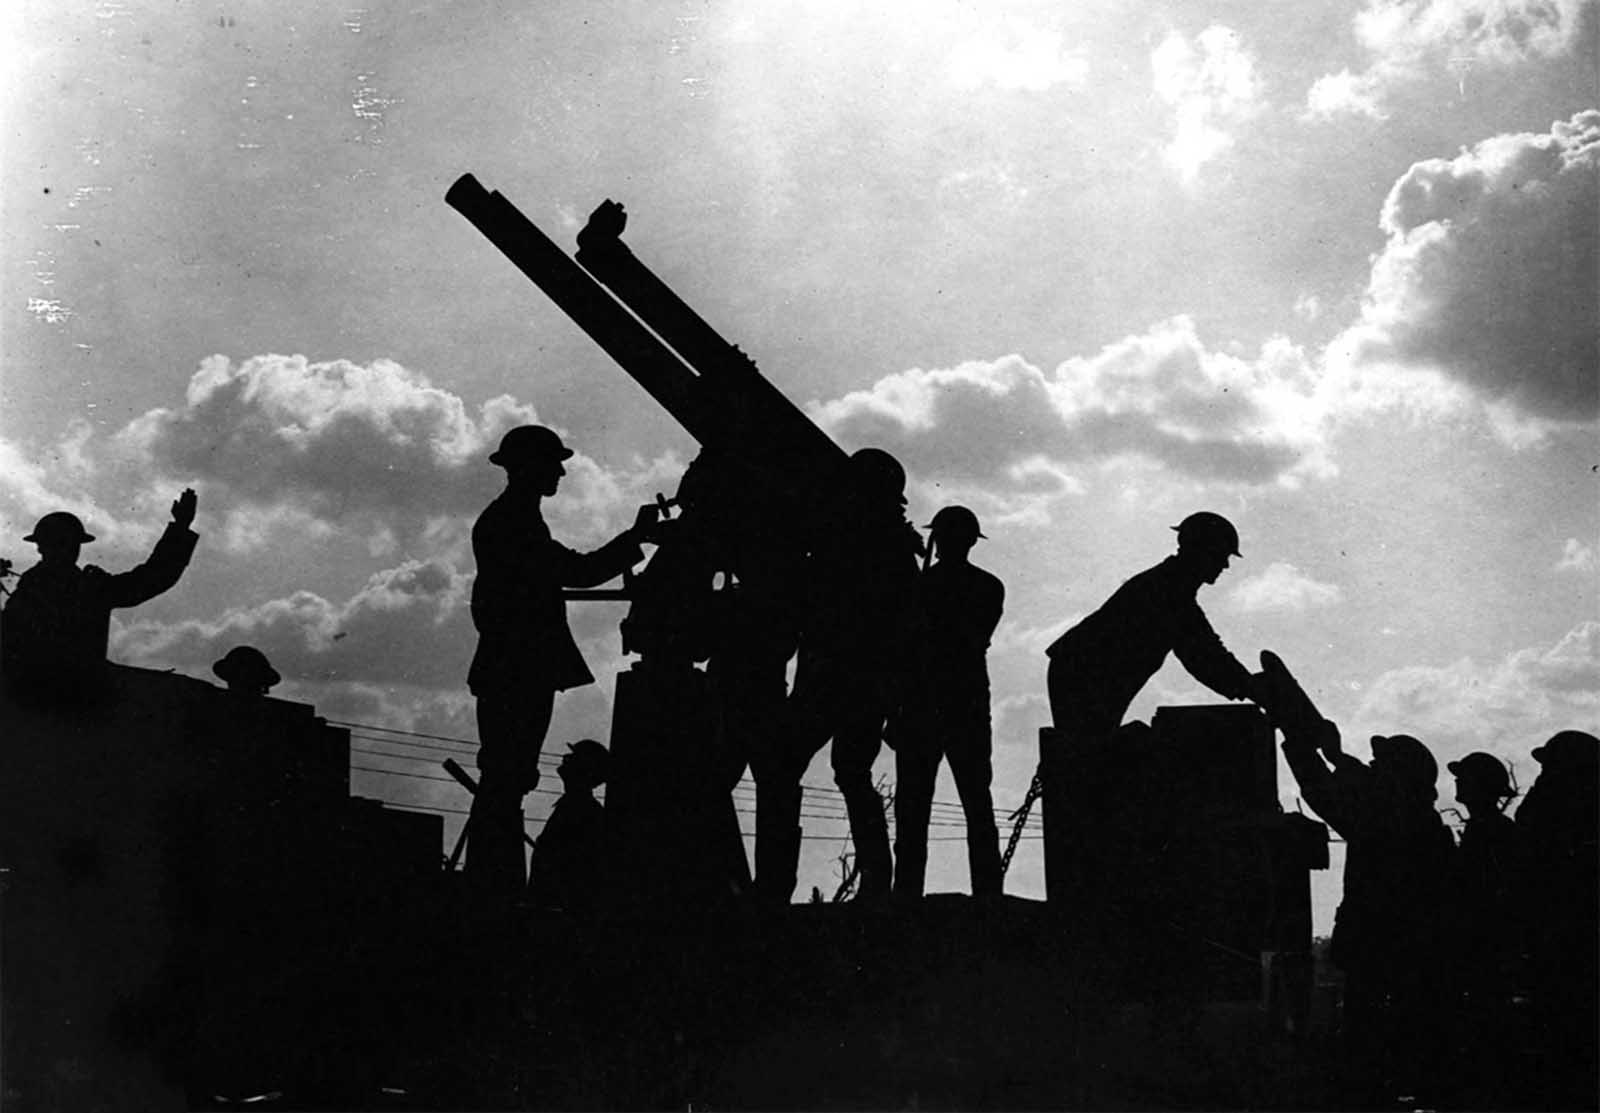 Soldiers silhouetted against the sky prepare to fire an anti-aircraft gun. On the right of the photograph a soldier is being handed a large shell for the gun. The Battle of Broodseinde (October 1917) was part of a larger offensive - the third Battle of Ypres - engineered by Sir Douglas Haig to capture the Passchendaele ridge.